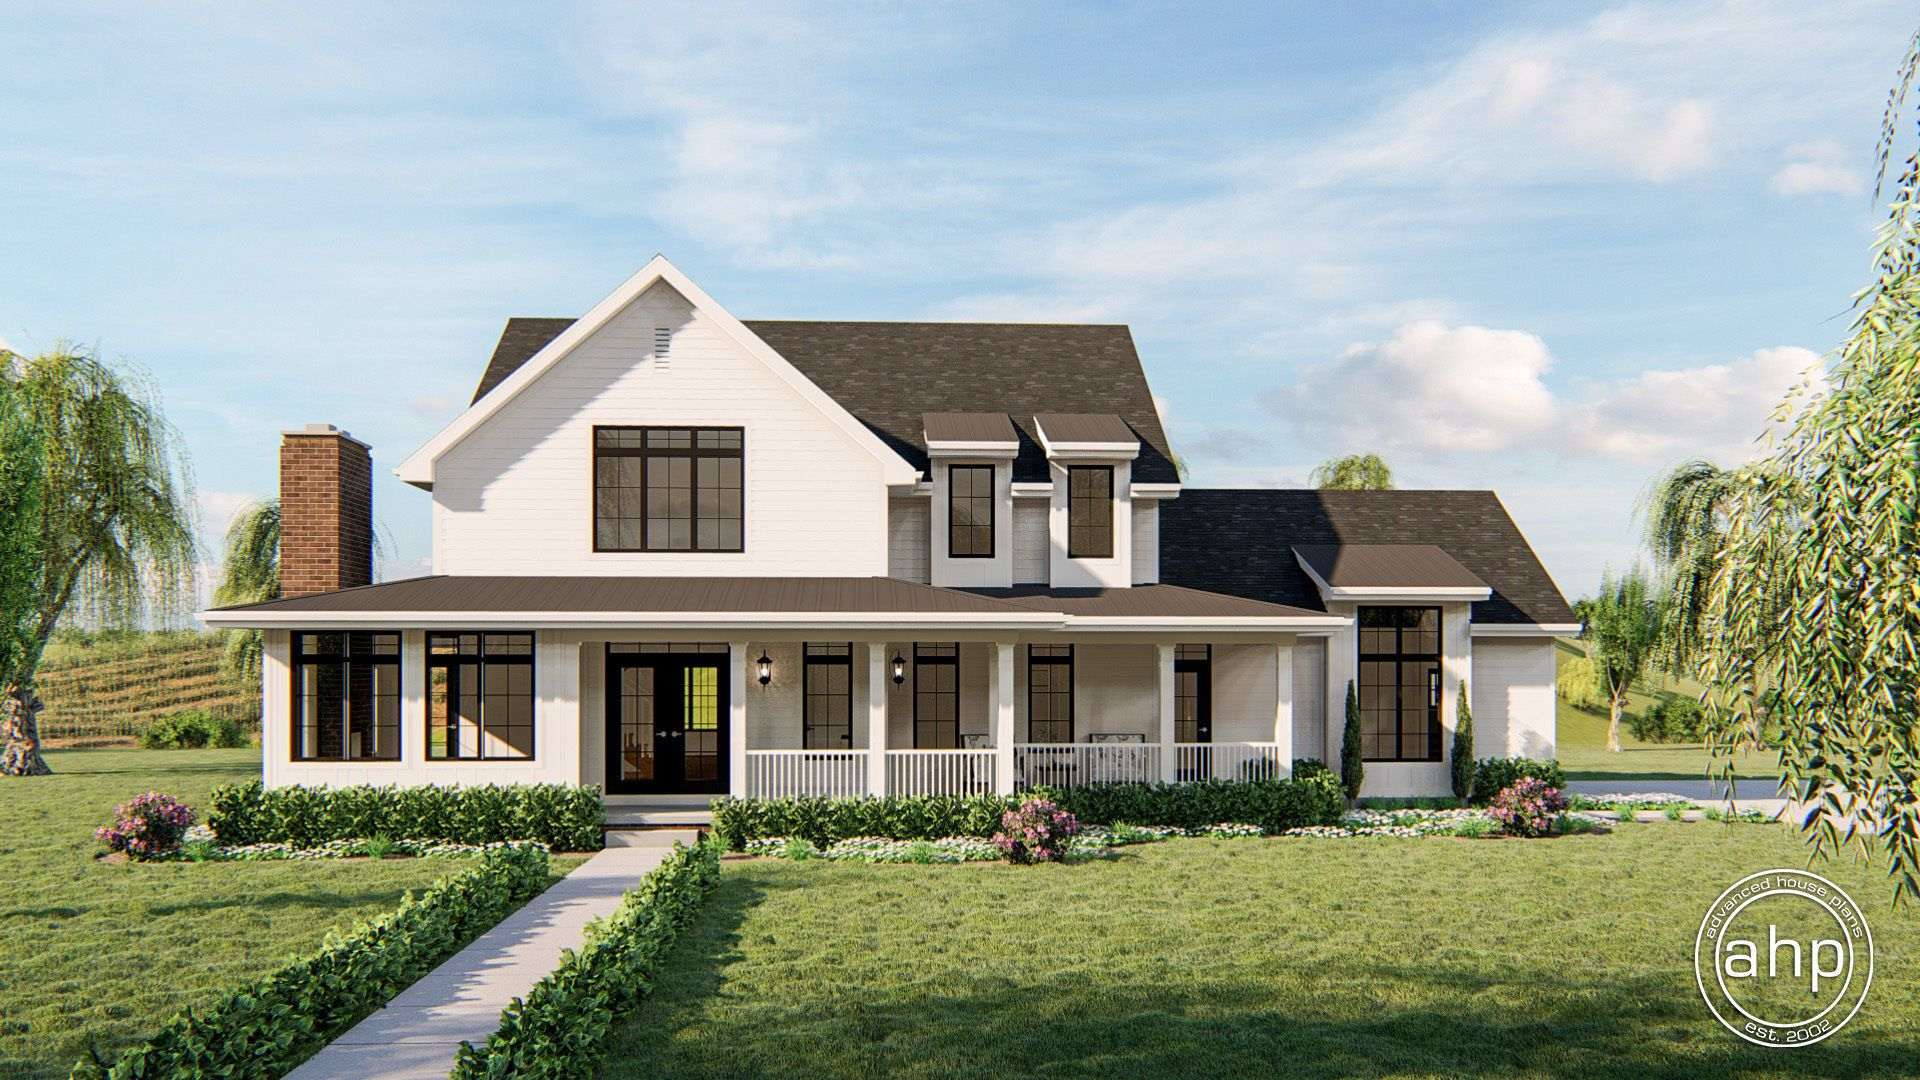 2 Story Southern Style House Plan Thomasville Southern Farmhouse Porch House Plans Farmhouse Plans